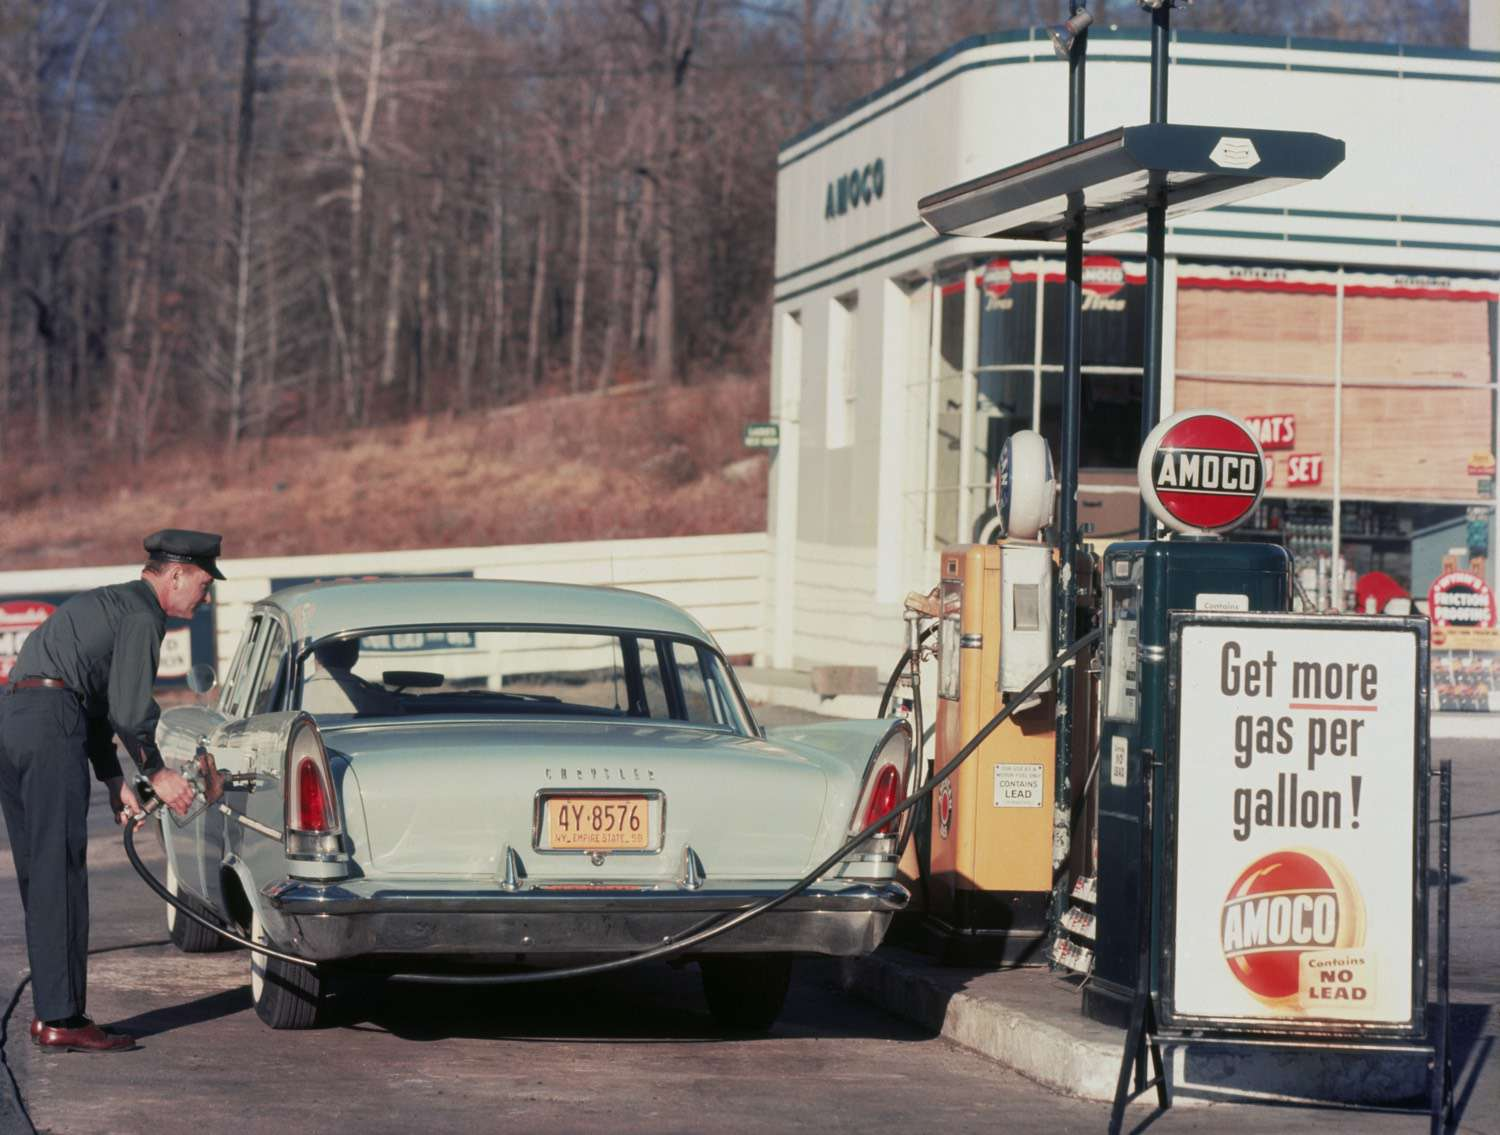 What is emitting here, Amoco or the Chrysler?